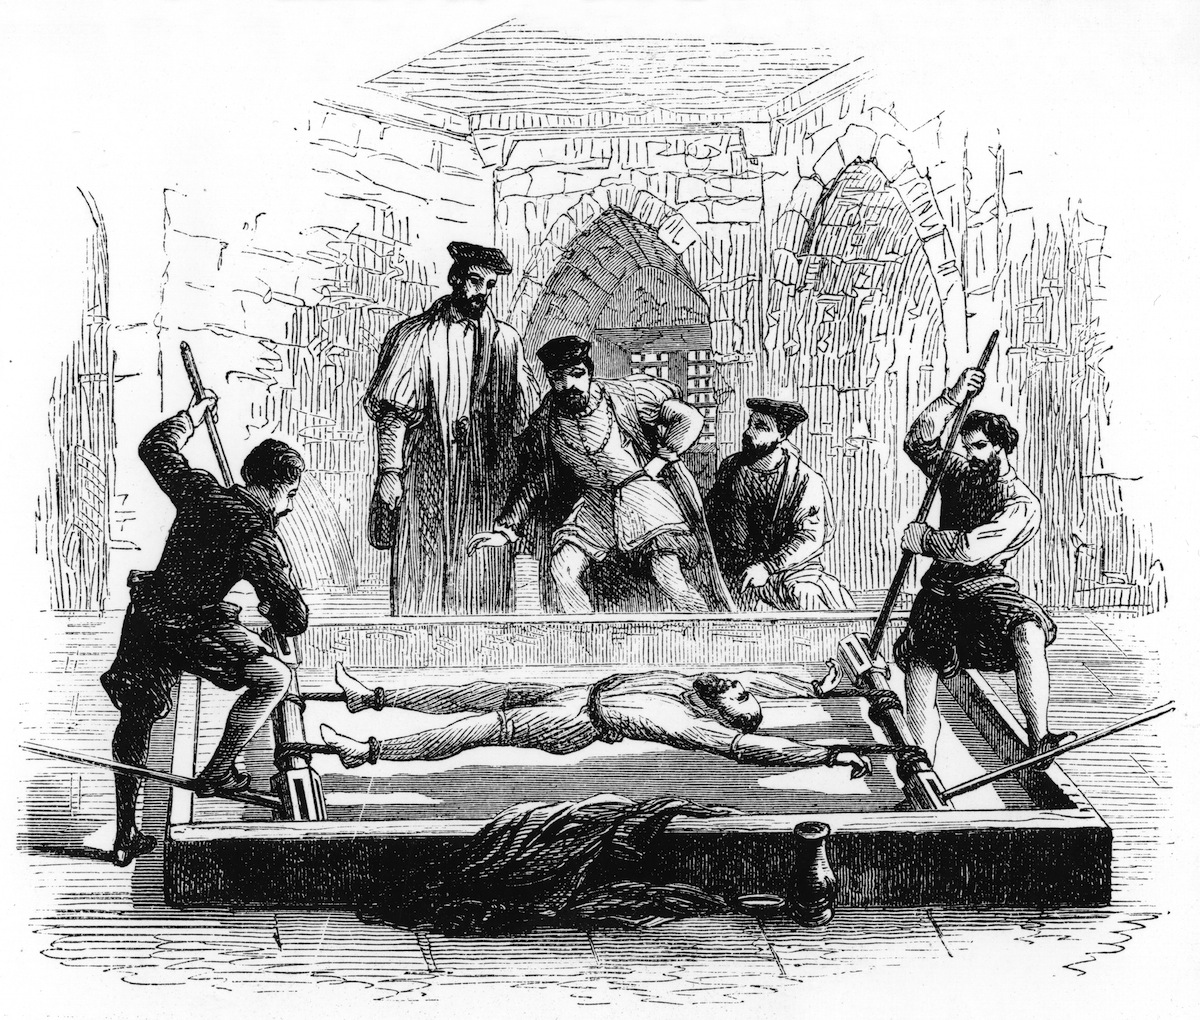 A 19th-century representation of a medieval torture device in use, from World of Wonders, published by Cassell and Co, (London, 1894).